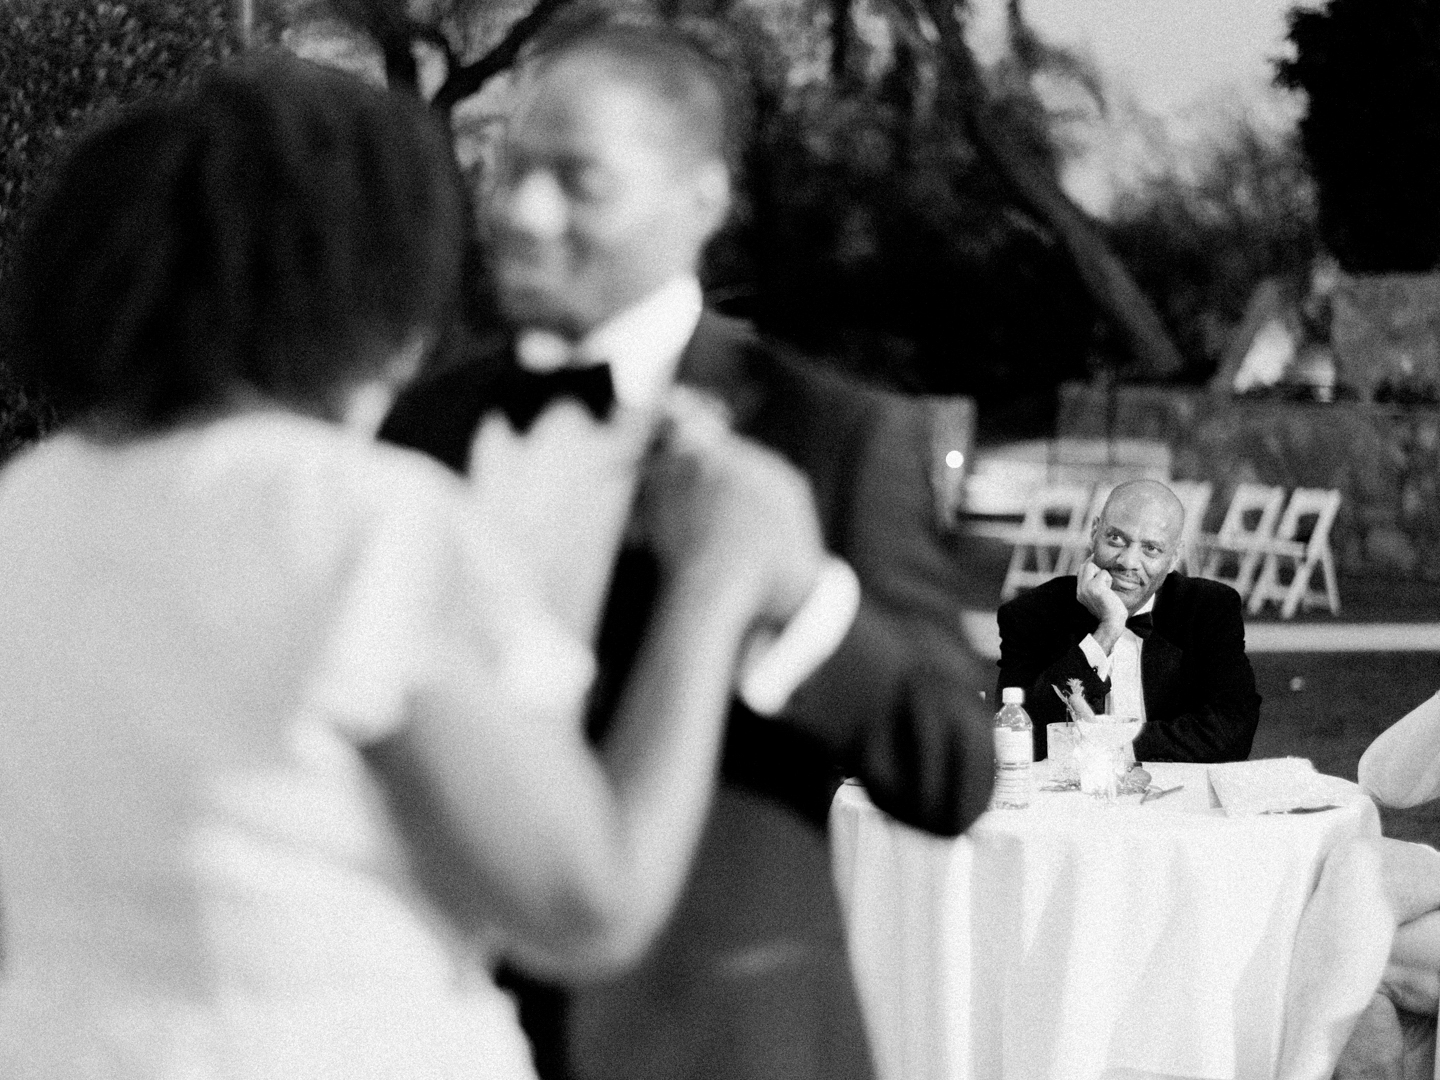 father of the groom watching the dance floor